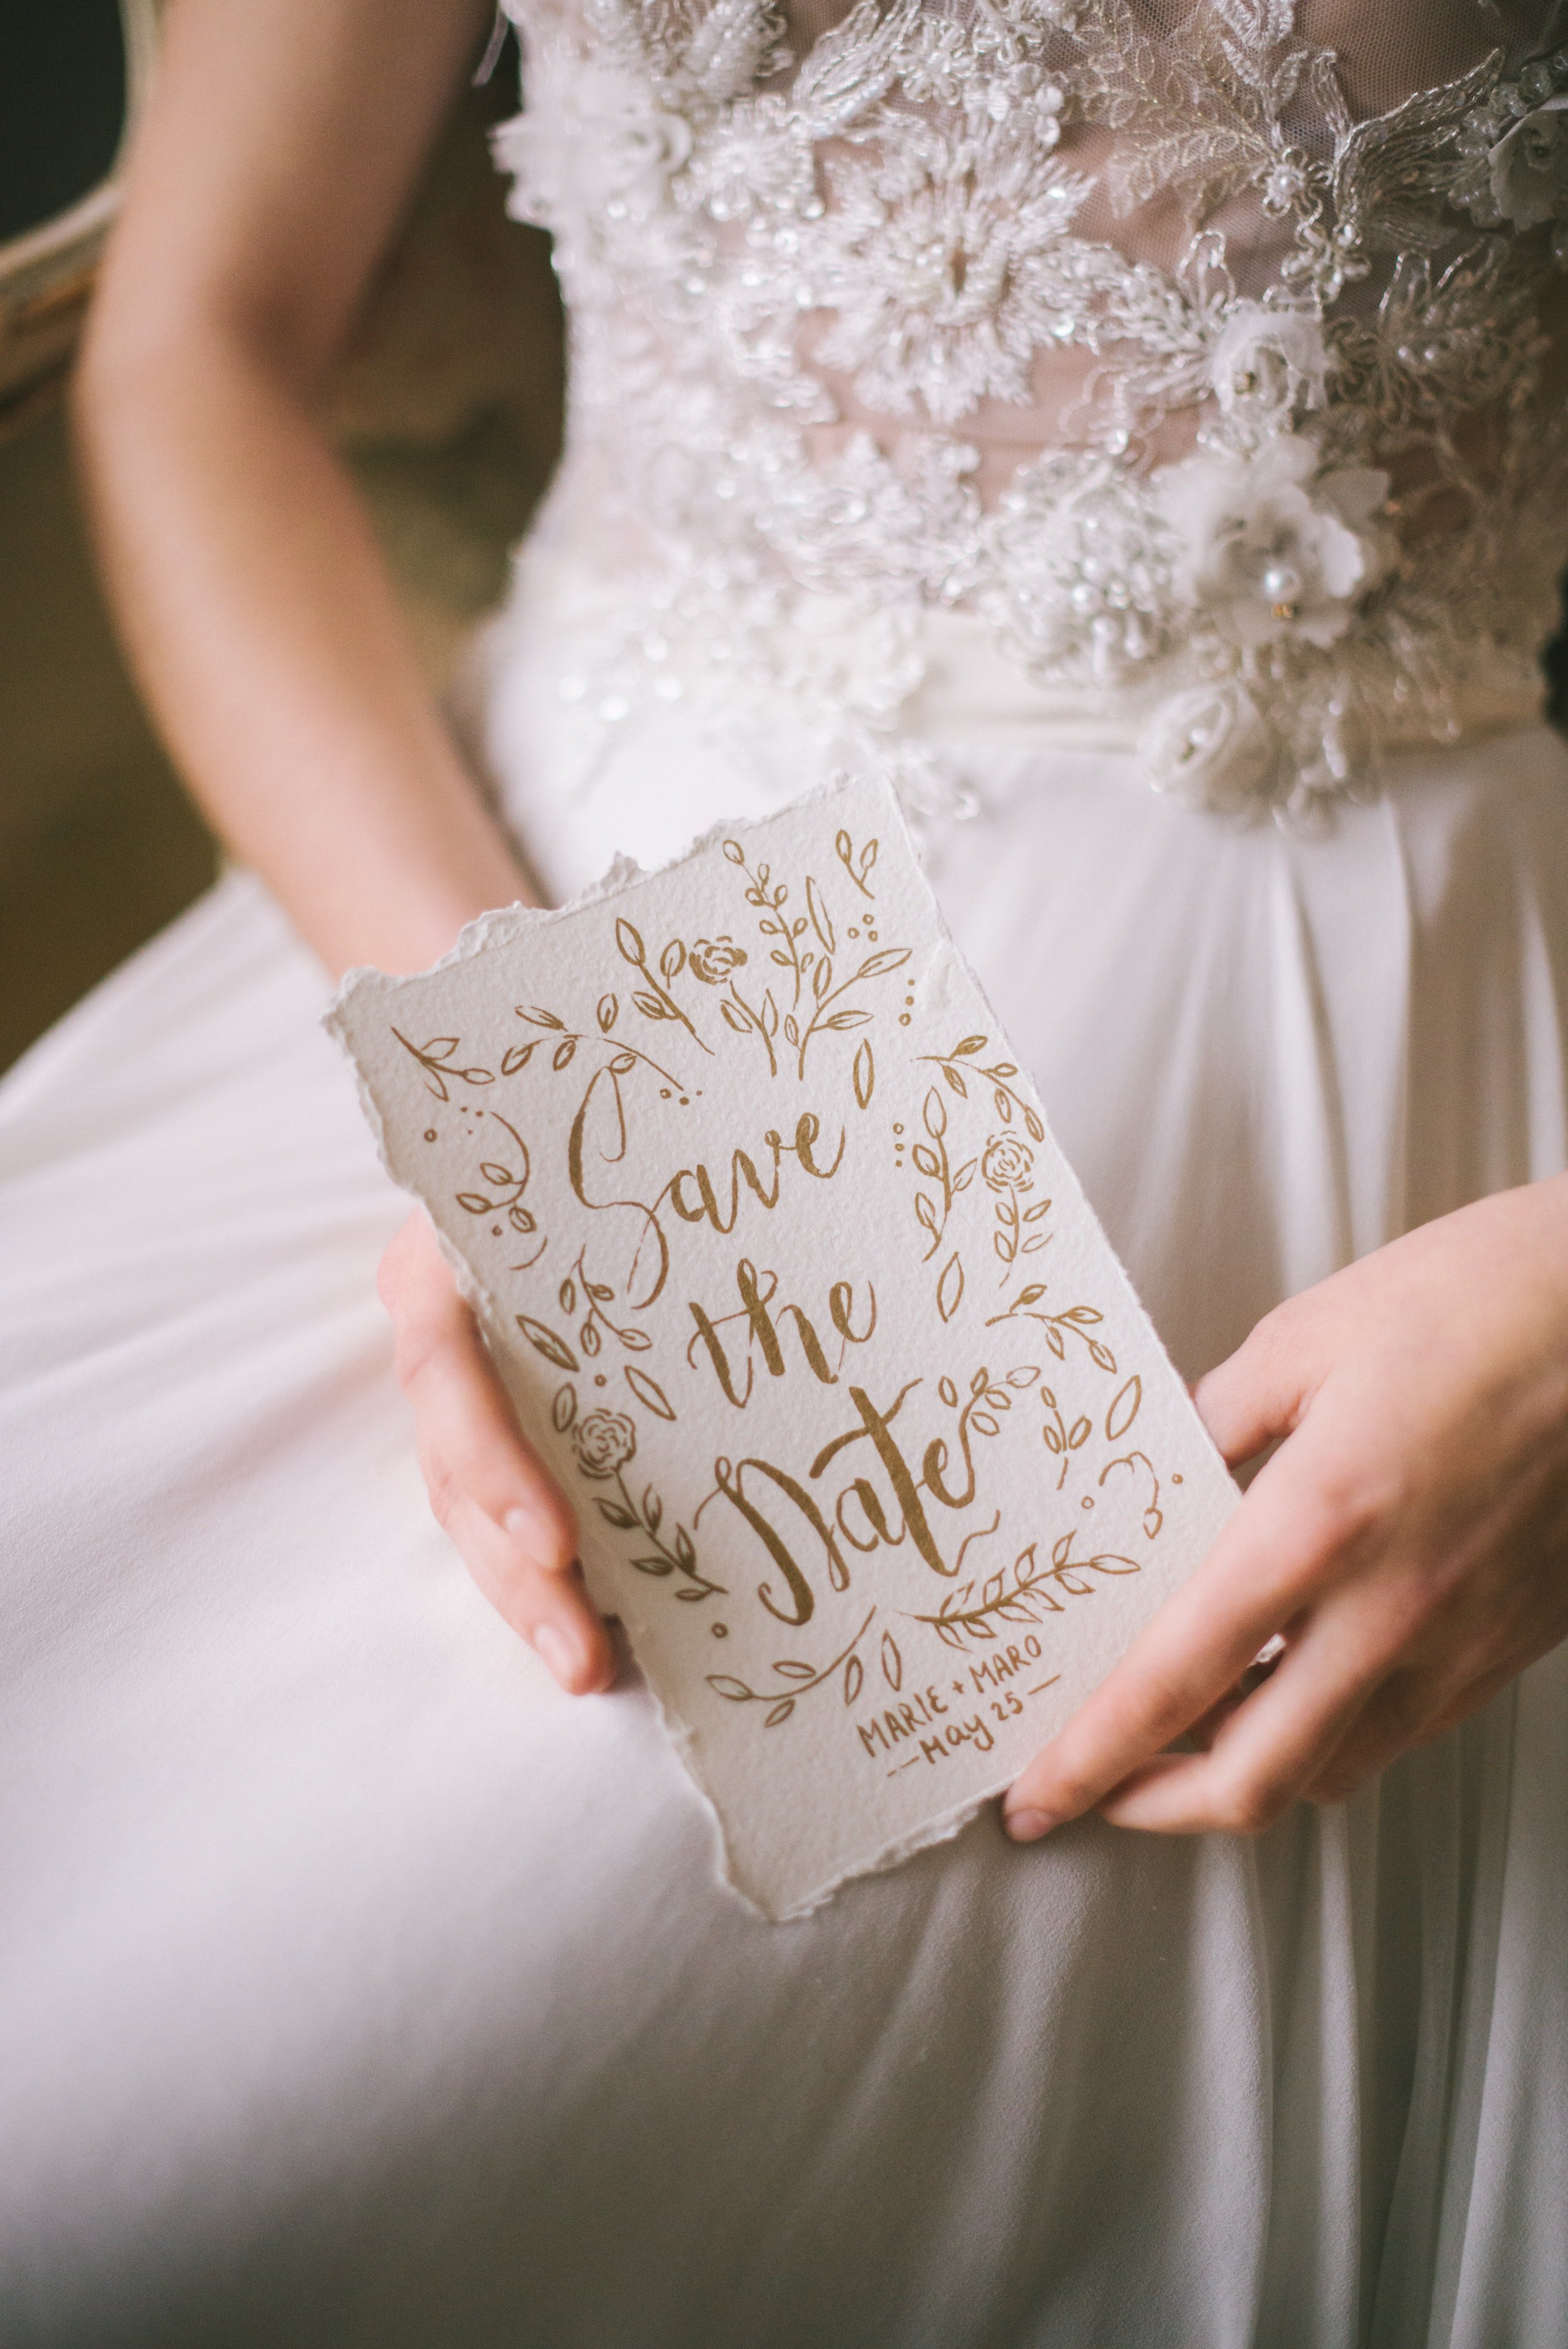 Invitation au mariage. | Photo : Pexels